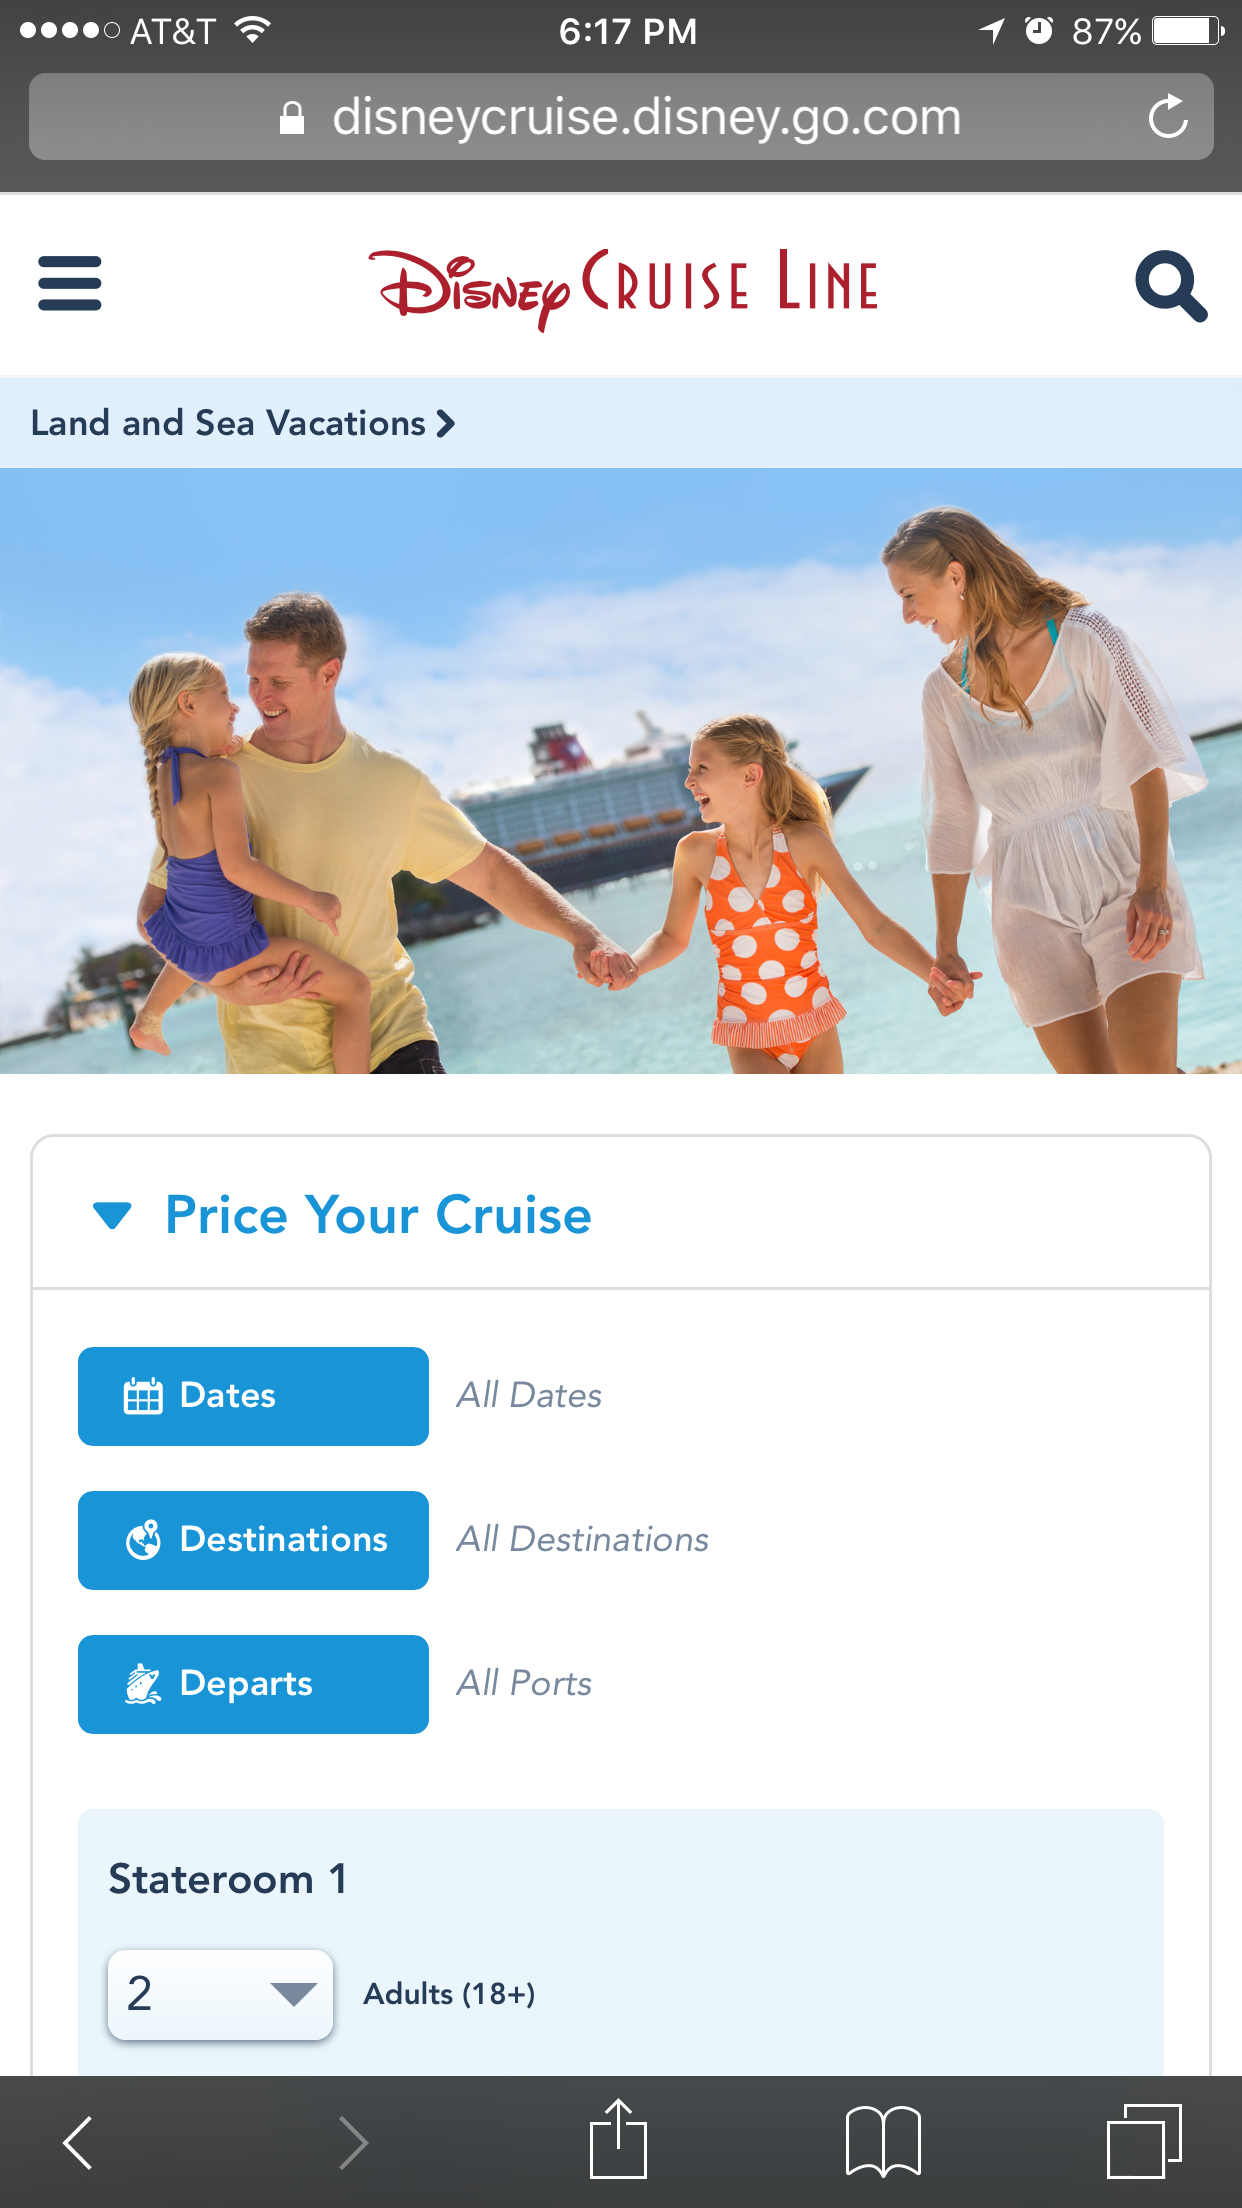 Disney Cruise Line Launches A Re Imagined And Mobile Friendly Website The Disney Cruise Line Blog